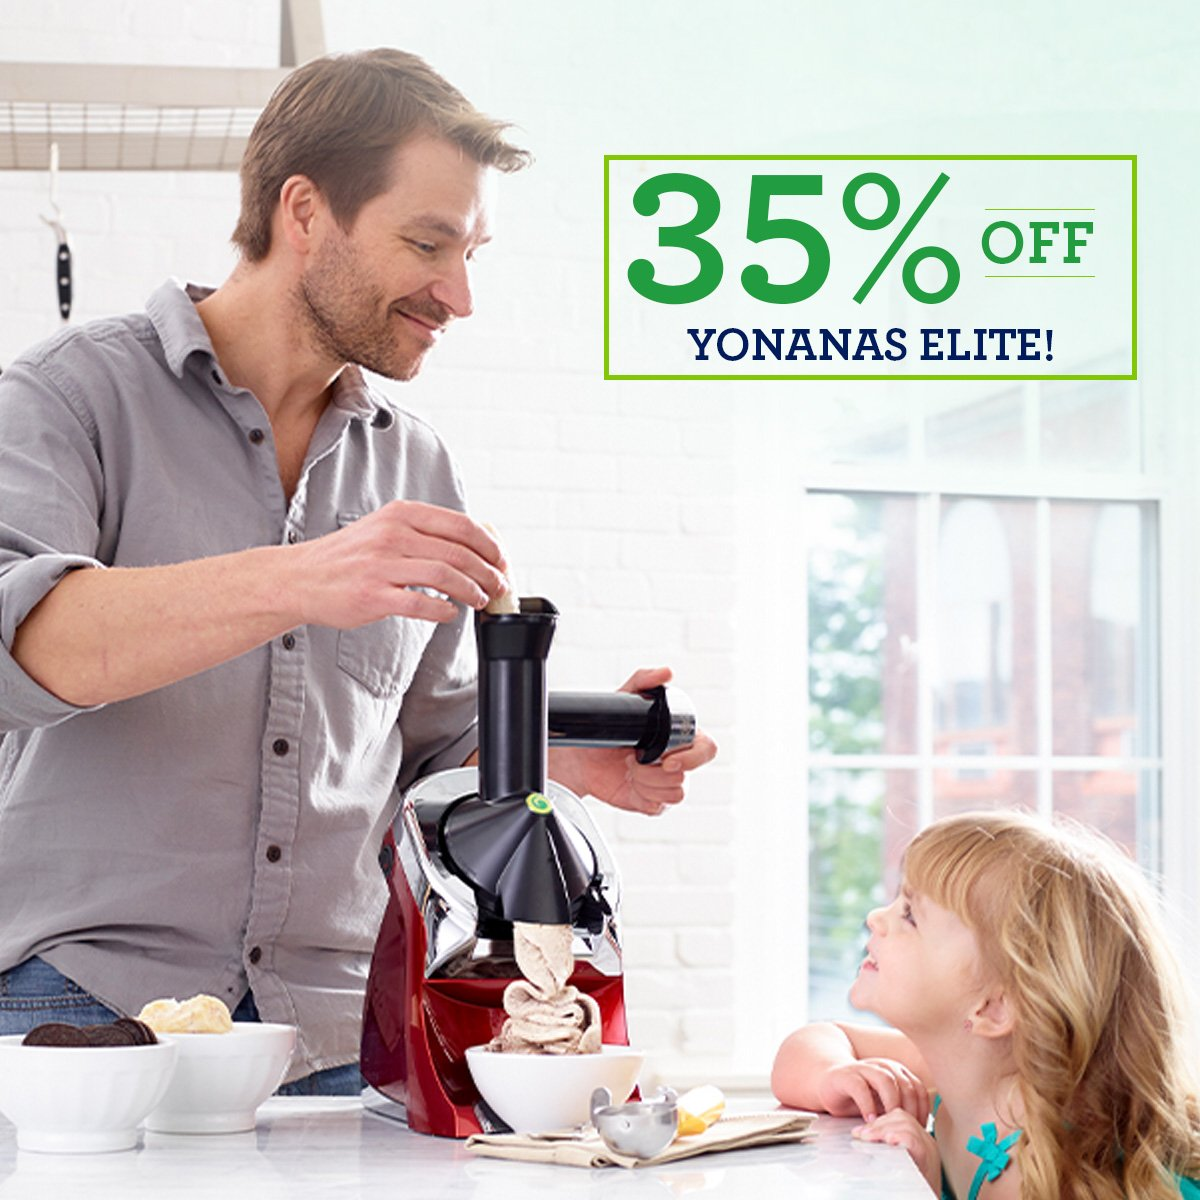 Yonanas Elite whips FRUIT into a creamy, soft-serve that you'll swear is ice cream. Fast, easy, delicious & healthy!   For a limited time, save 35% + Free Shipping* with code ELITE35 Shop now>> https://t.co/mZT7OI6AHK https://t.co/vGttFaT20F